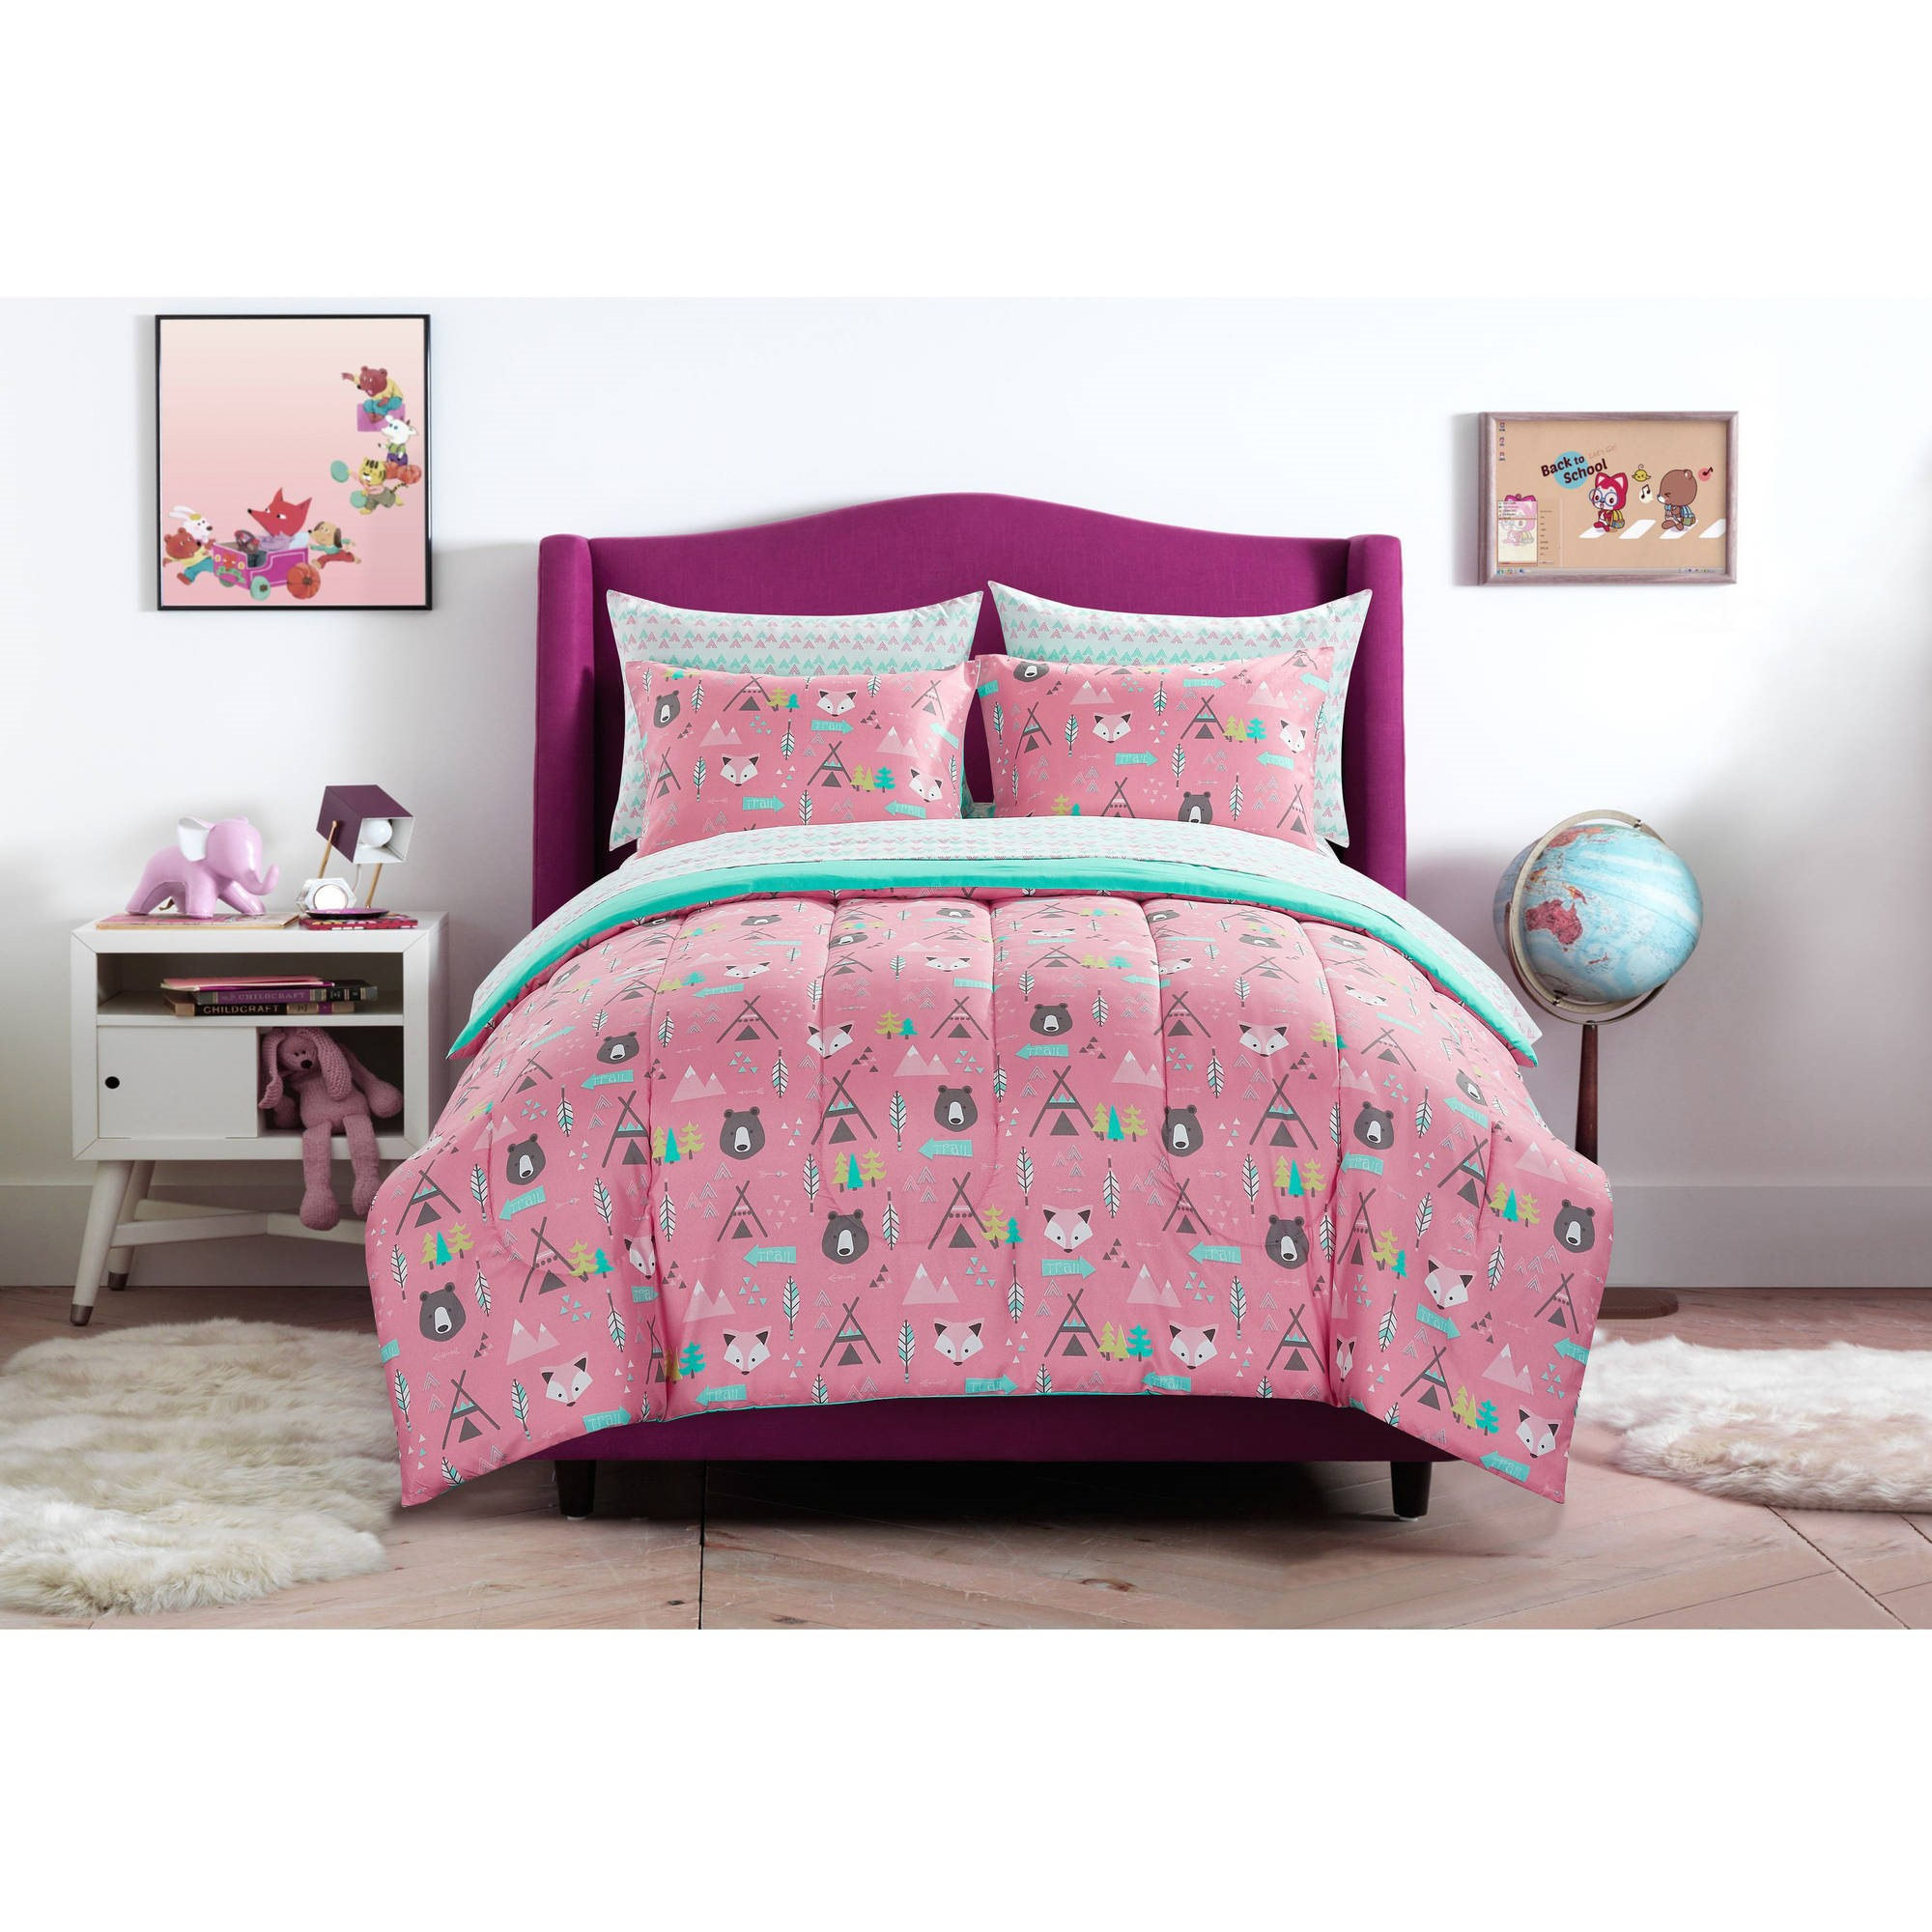 Great Walmart Bed Decoration Ideas